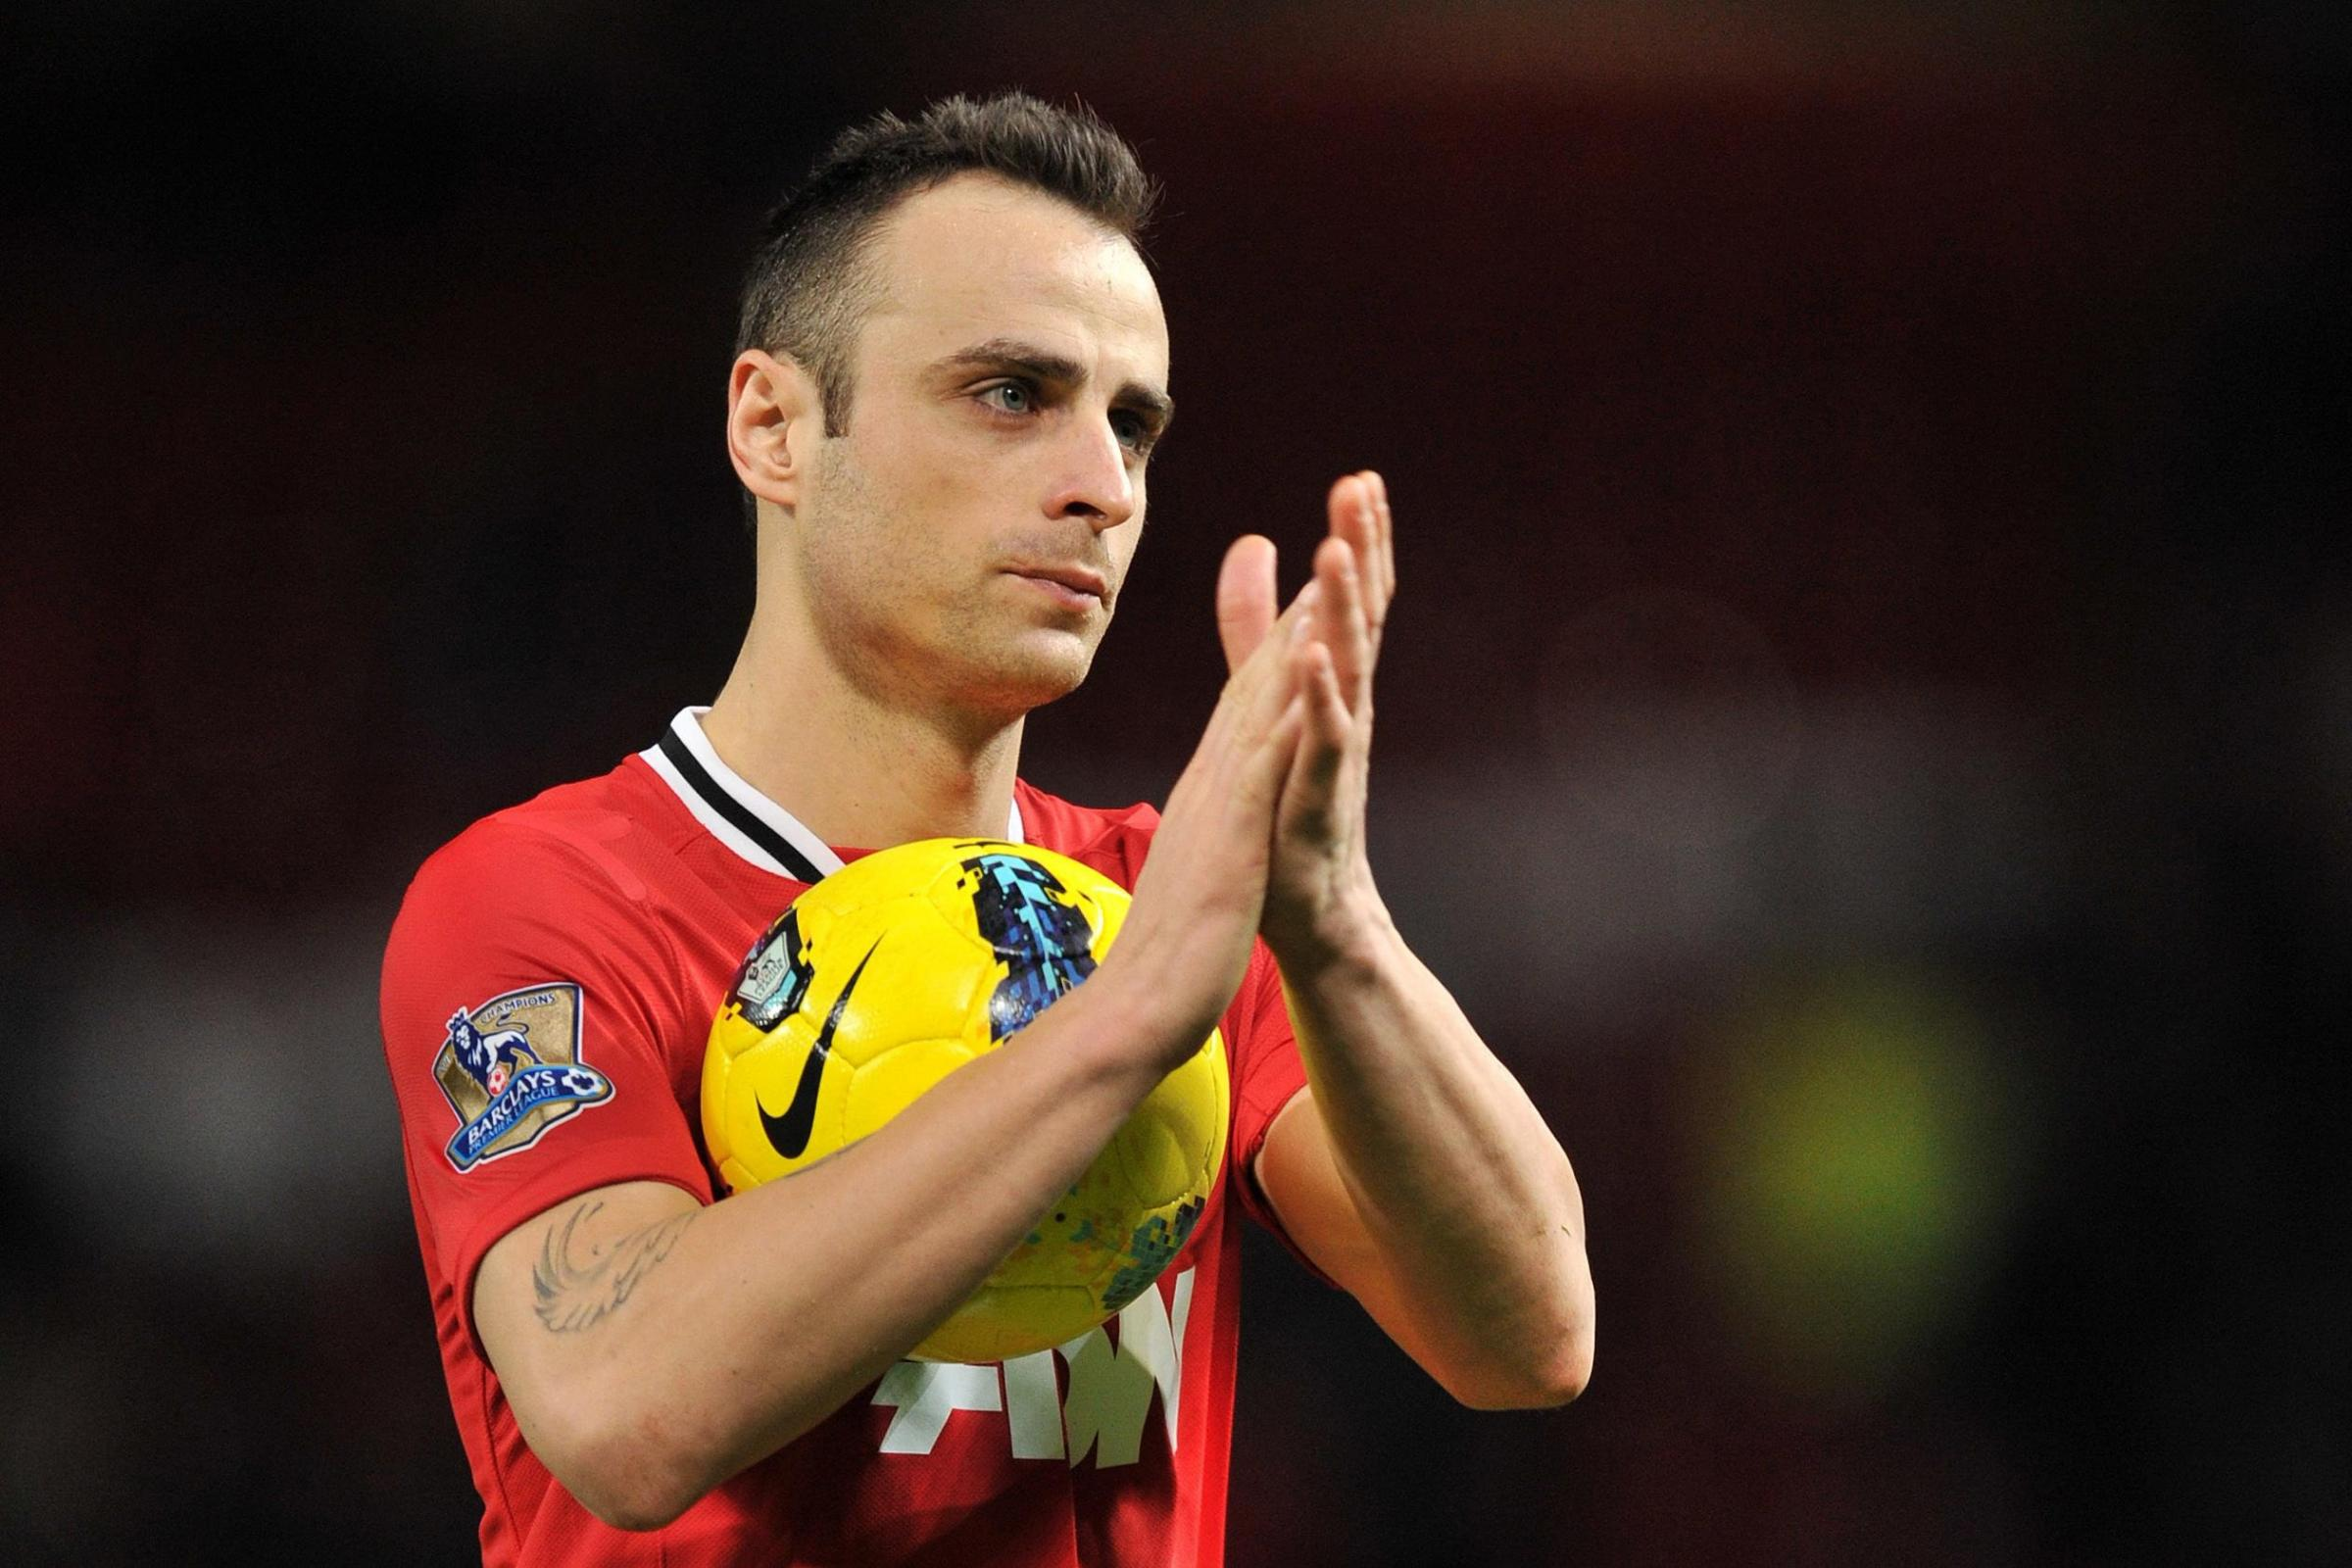 Dimitar Berbatov believes the reaction to Manchester United's weekend defeat has been over the top